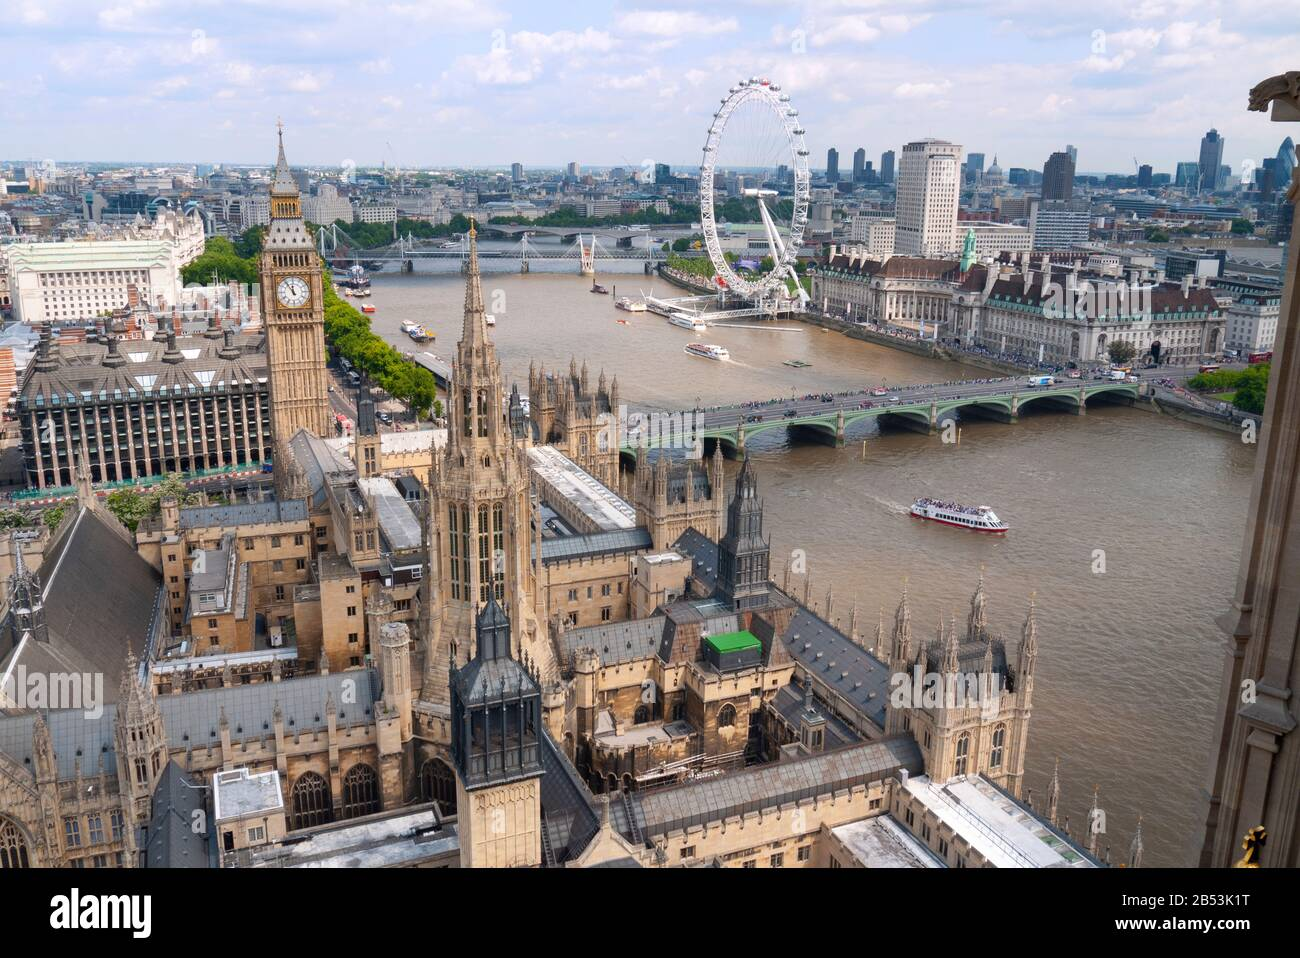 View looking over Palace of Westminster along River Thames towards the London Eye showing St Stephen's and Elizabeth towers. London, United Kingdom Stock Photo